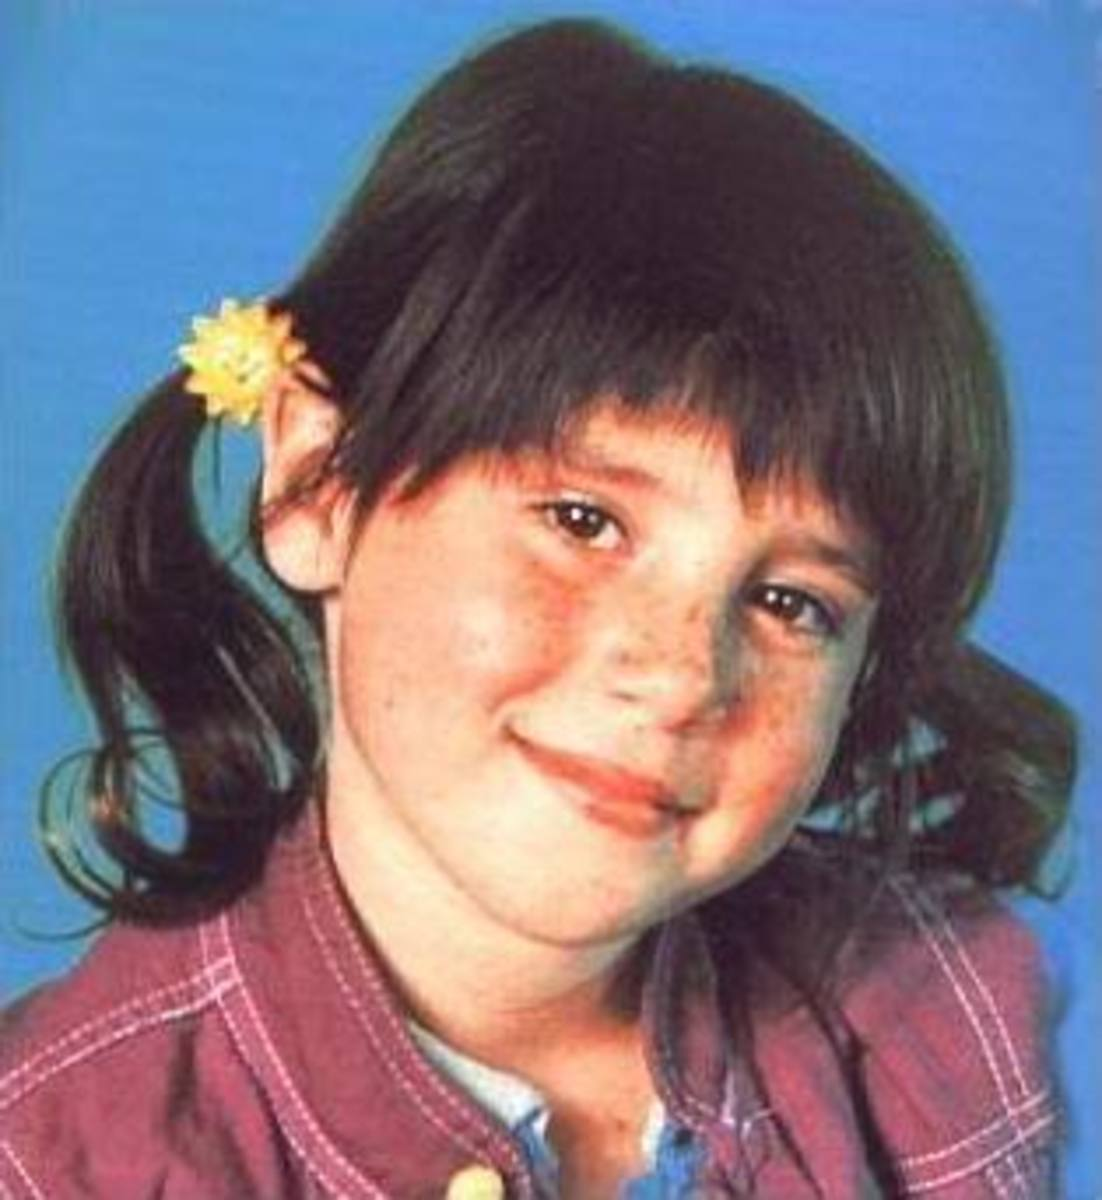 Punky Brewster - A Hero to 80s Kids